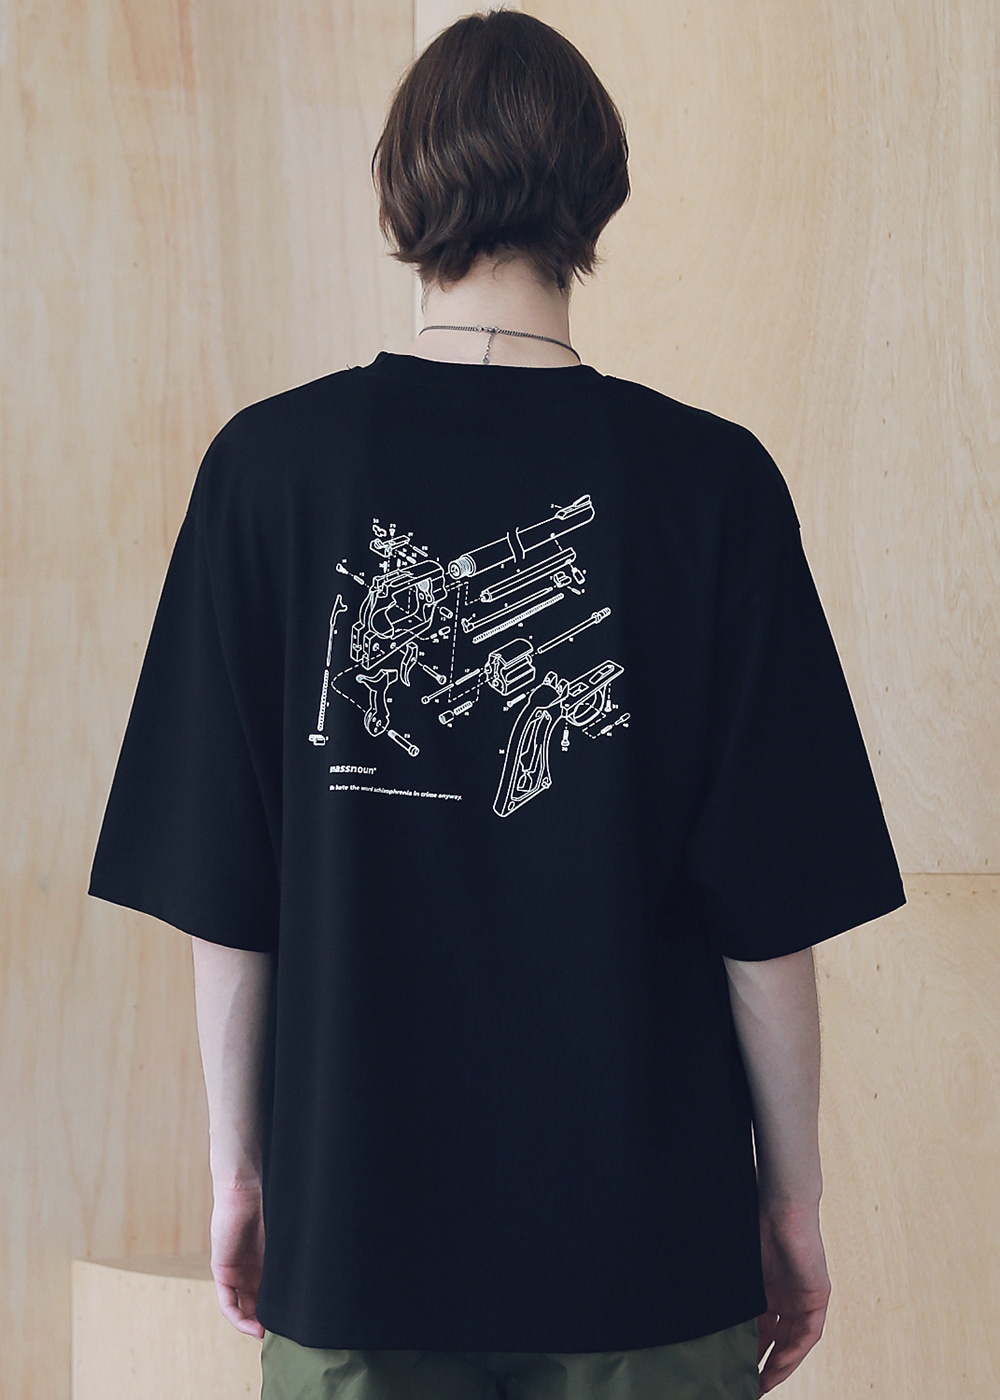 MSNU DISASSEMBLE OVERSIZED T-SHIRTS MSNTS005-BK